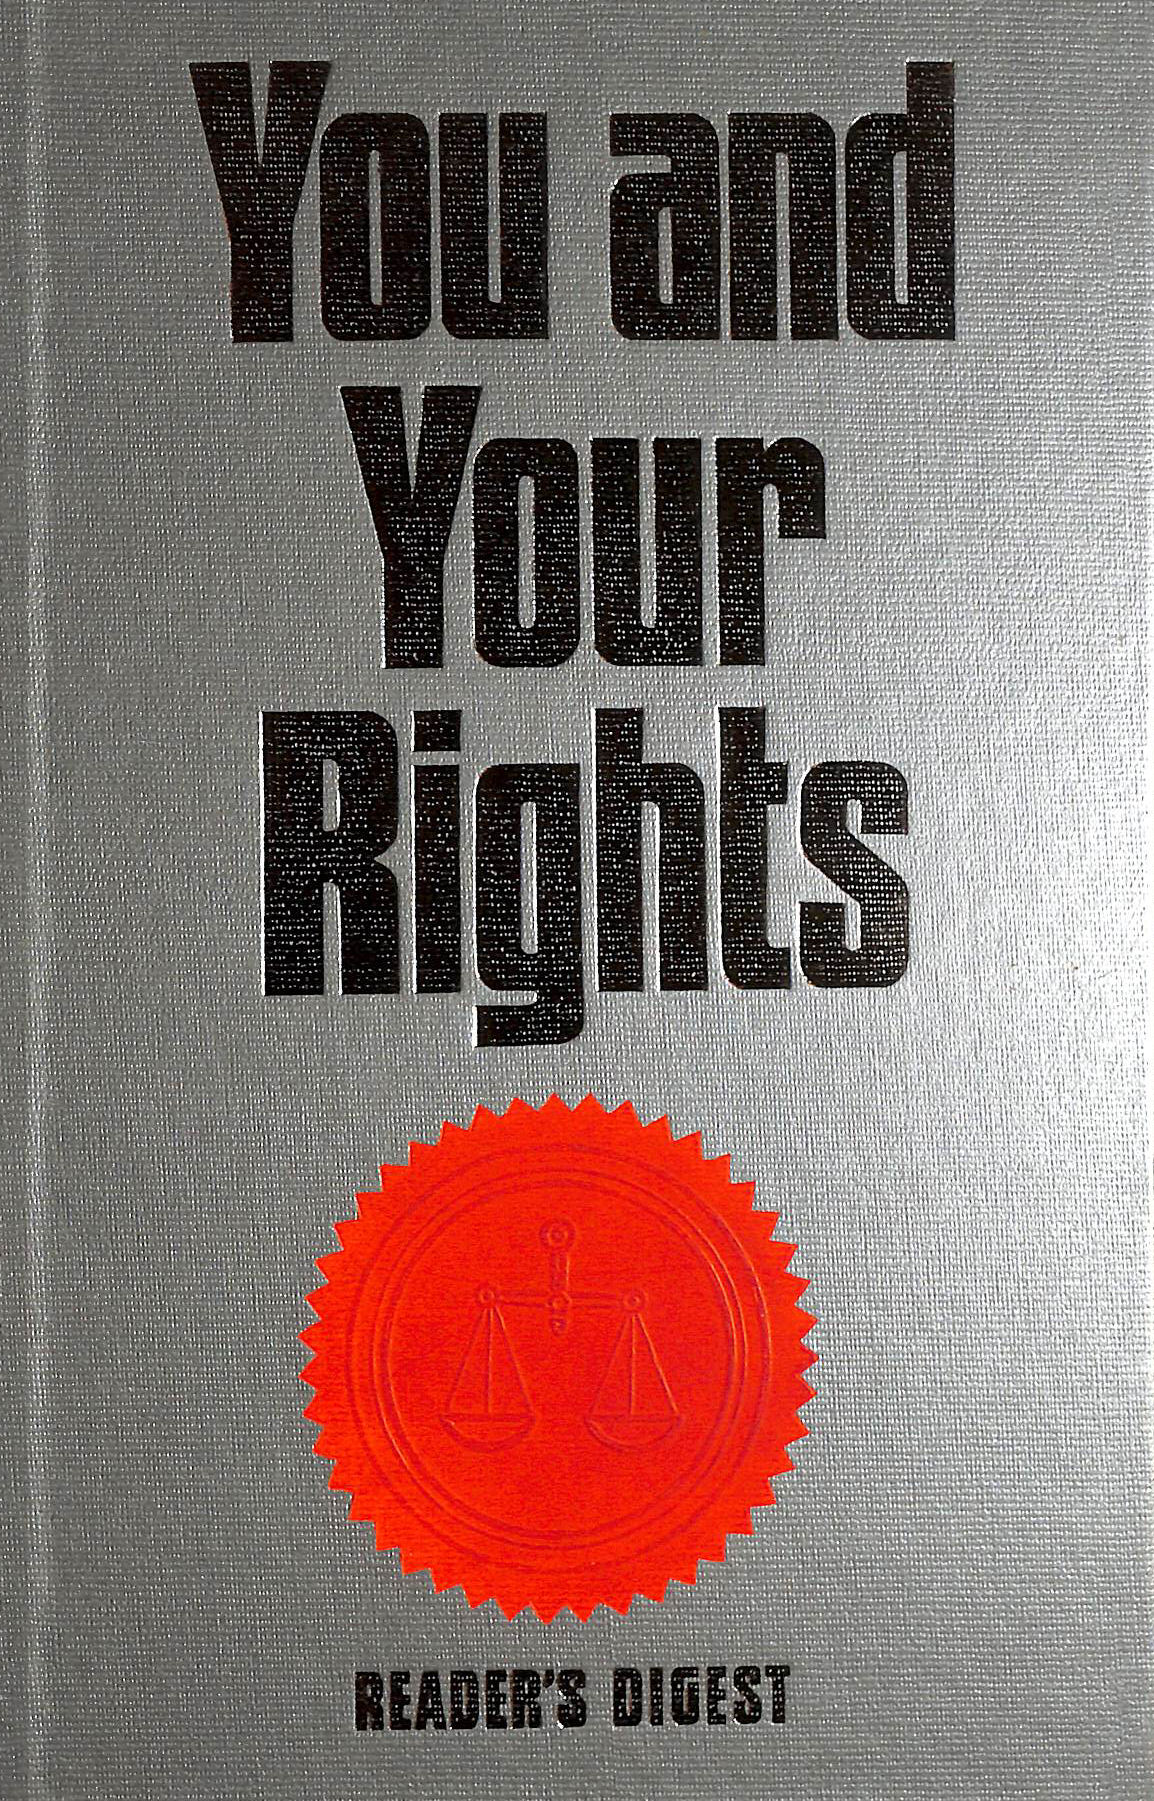 READER'S DIGEST - You and Your Rights